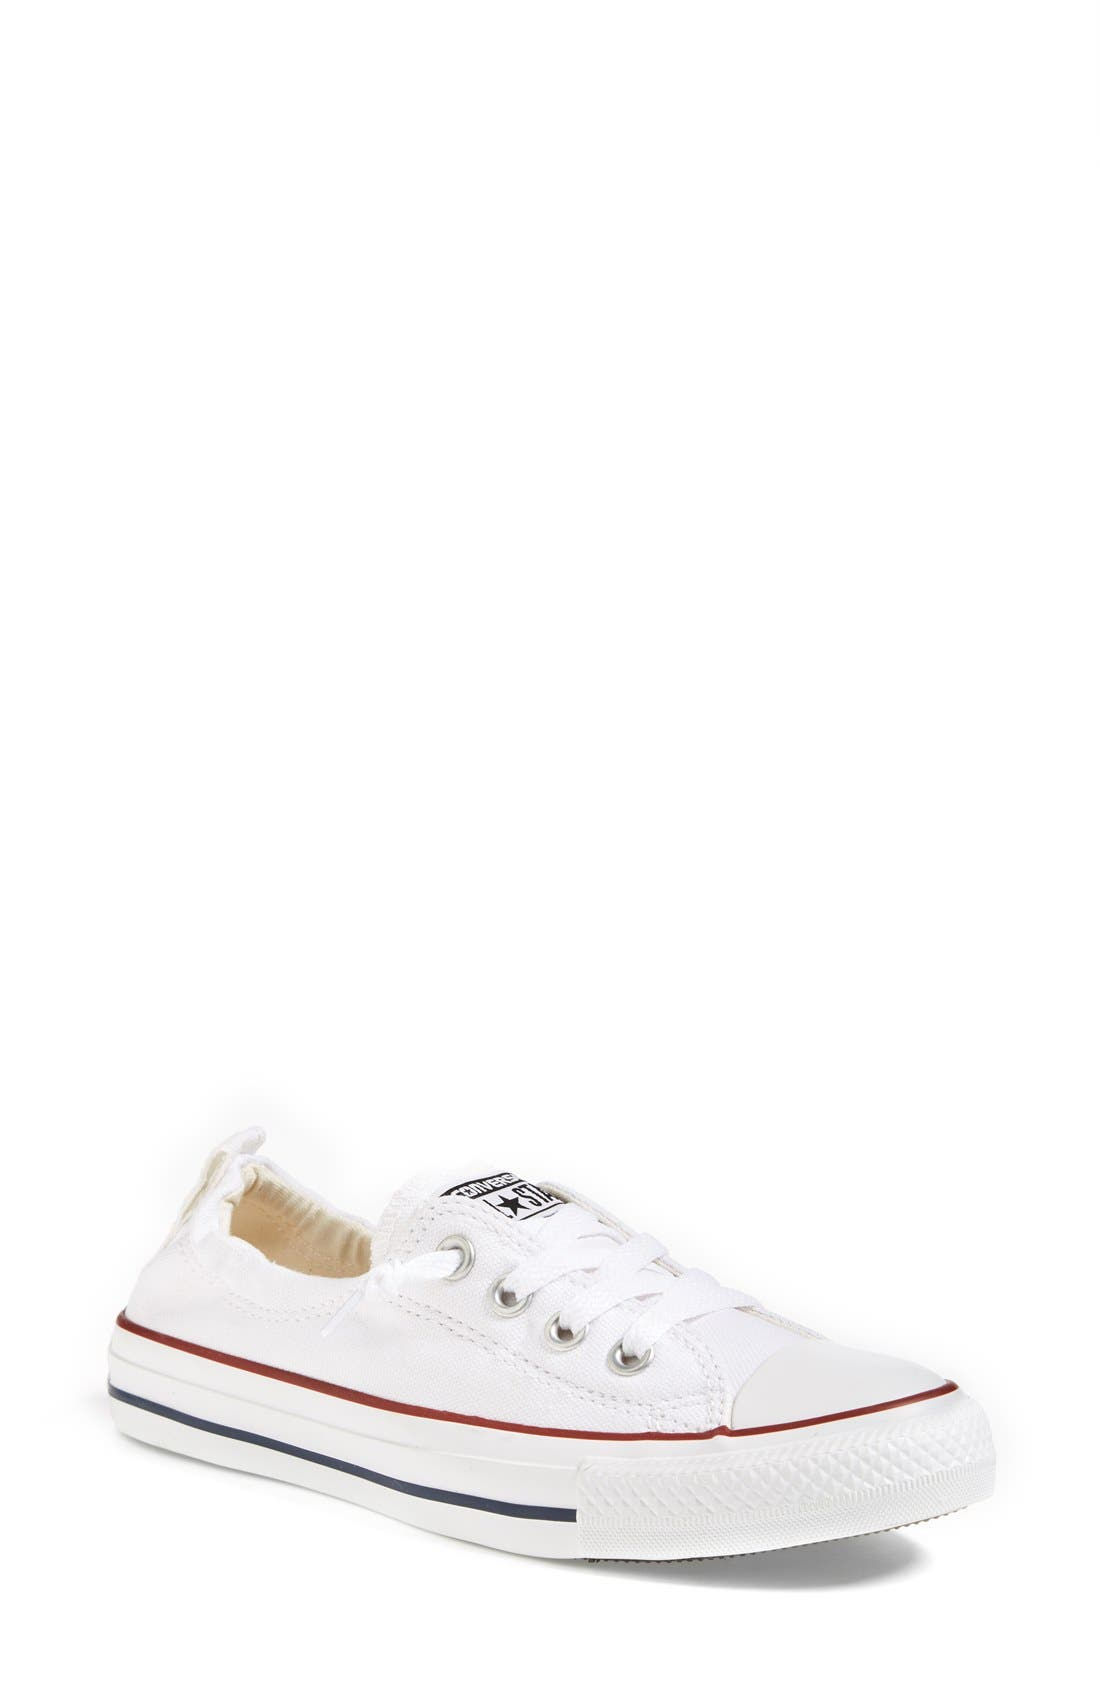 CONVERSE,                             Chuck Taylor<sup>®</sup> 'Shoreline' Sneaker,                             Main thumbnail 1, color,                             WHITE